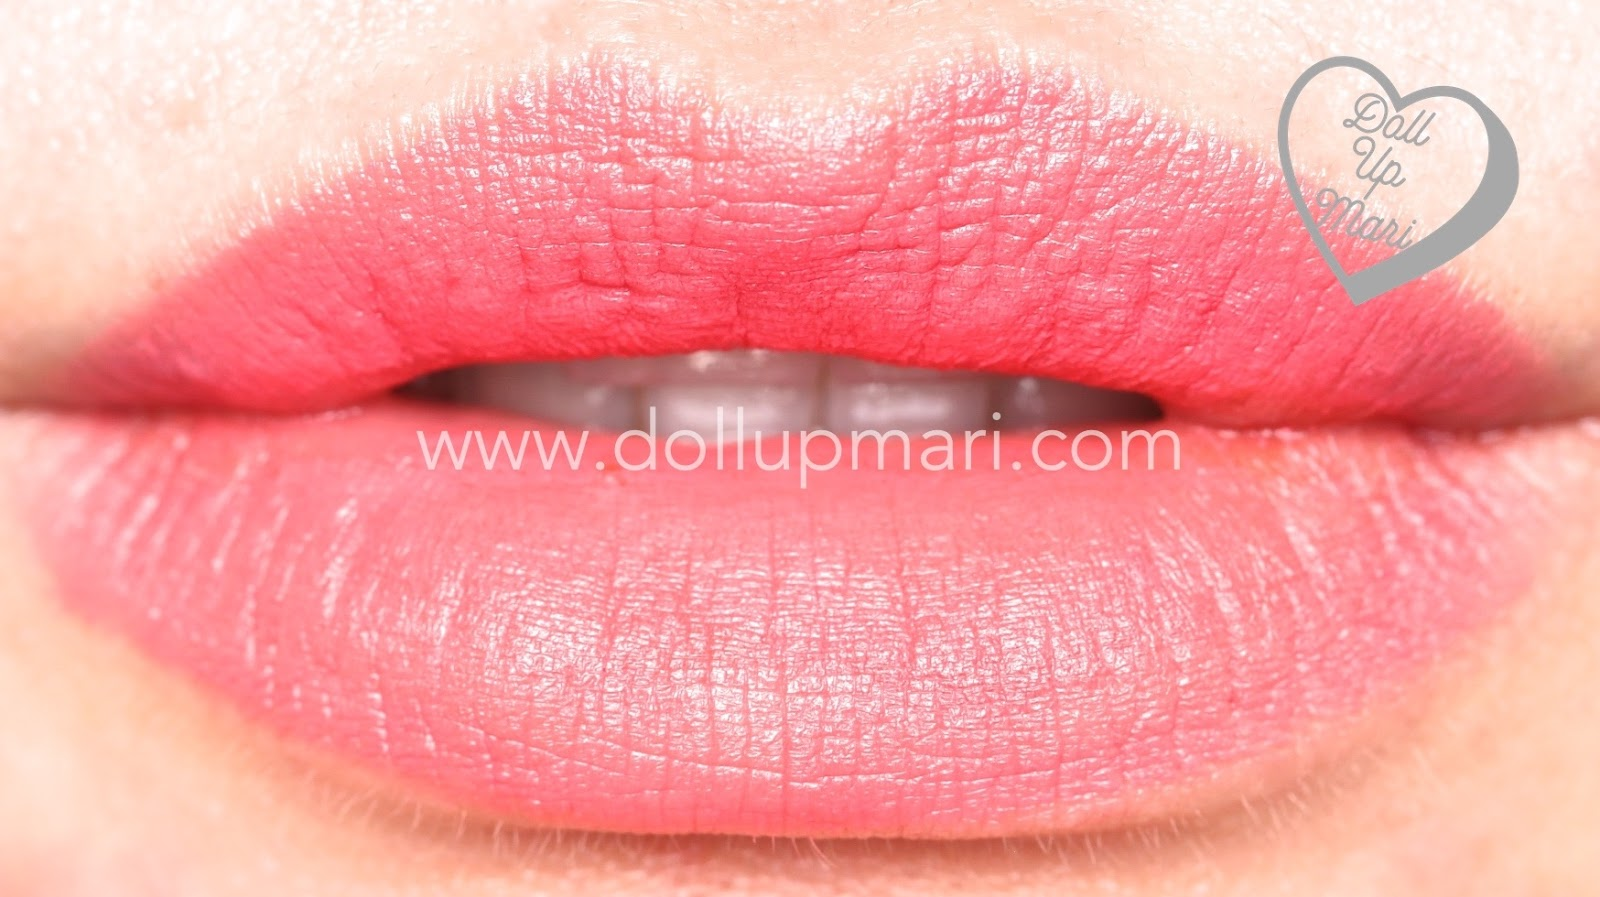 Lip Swatch of Peach Flutters shade of AVON Perfectly Matte Lipstick